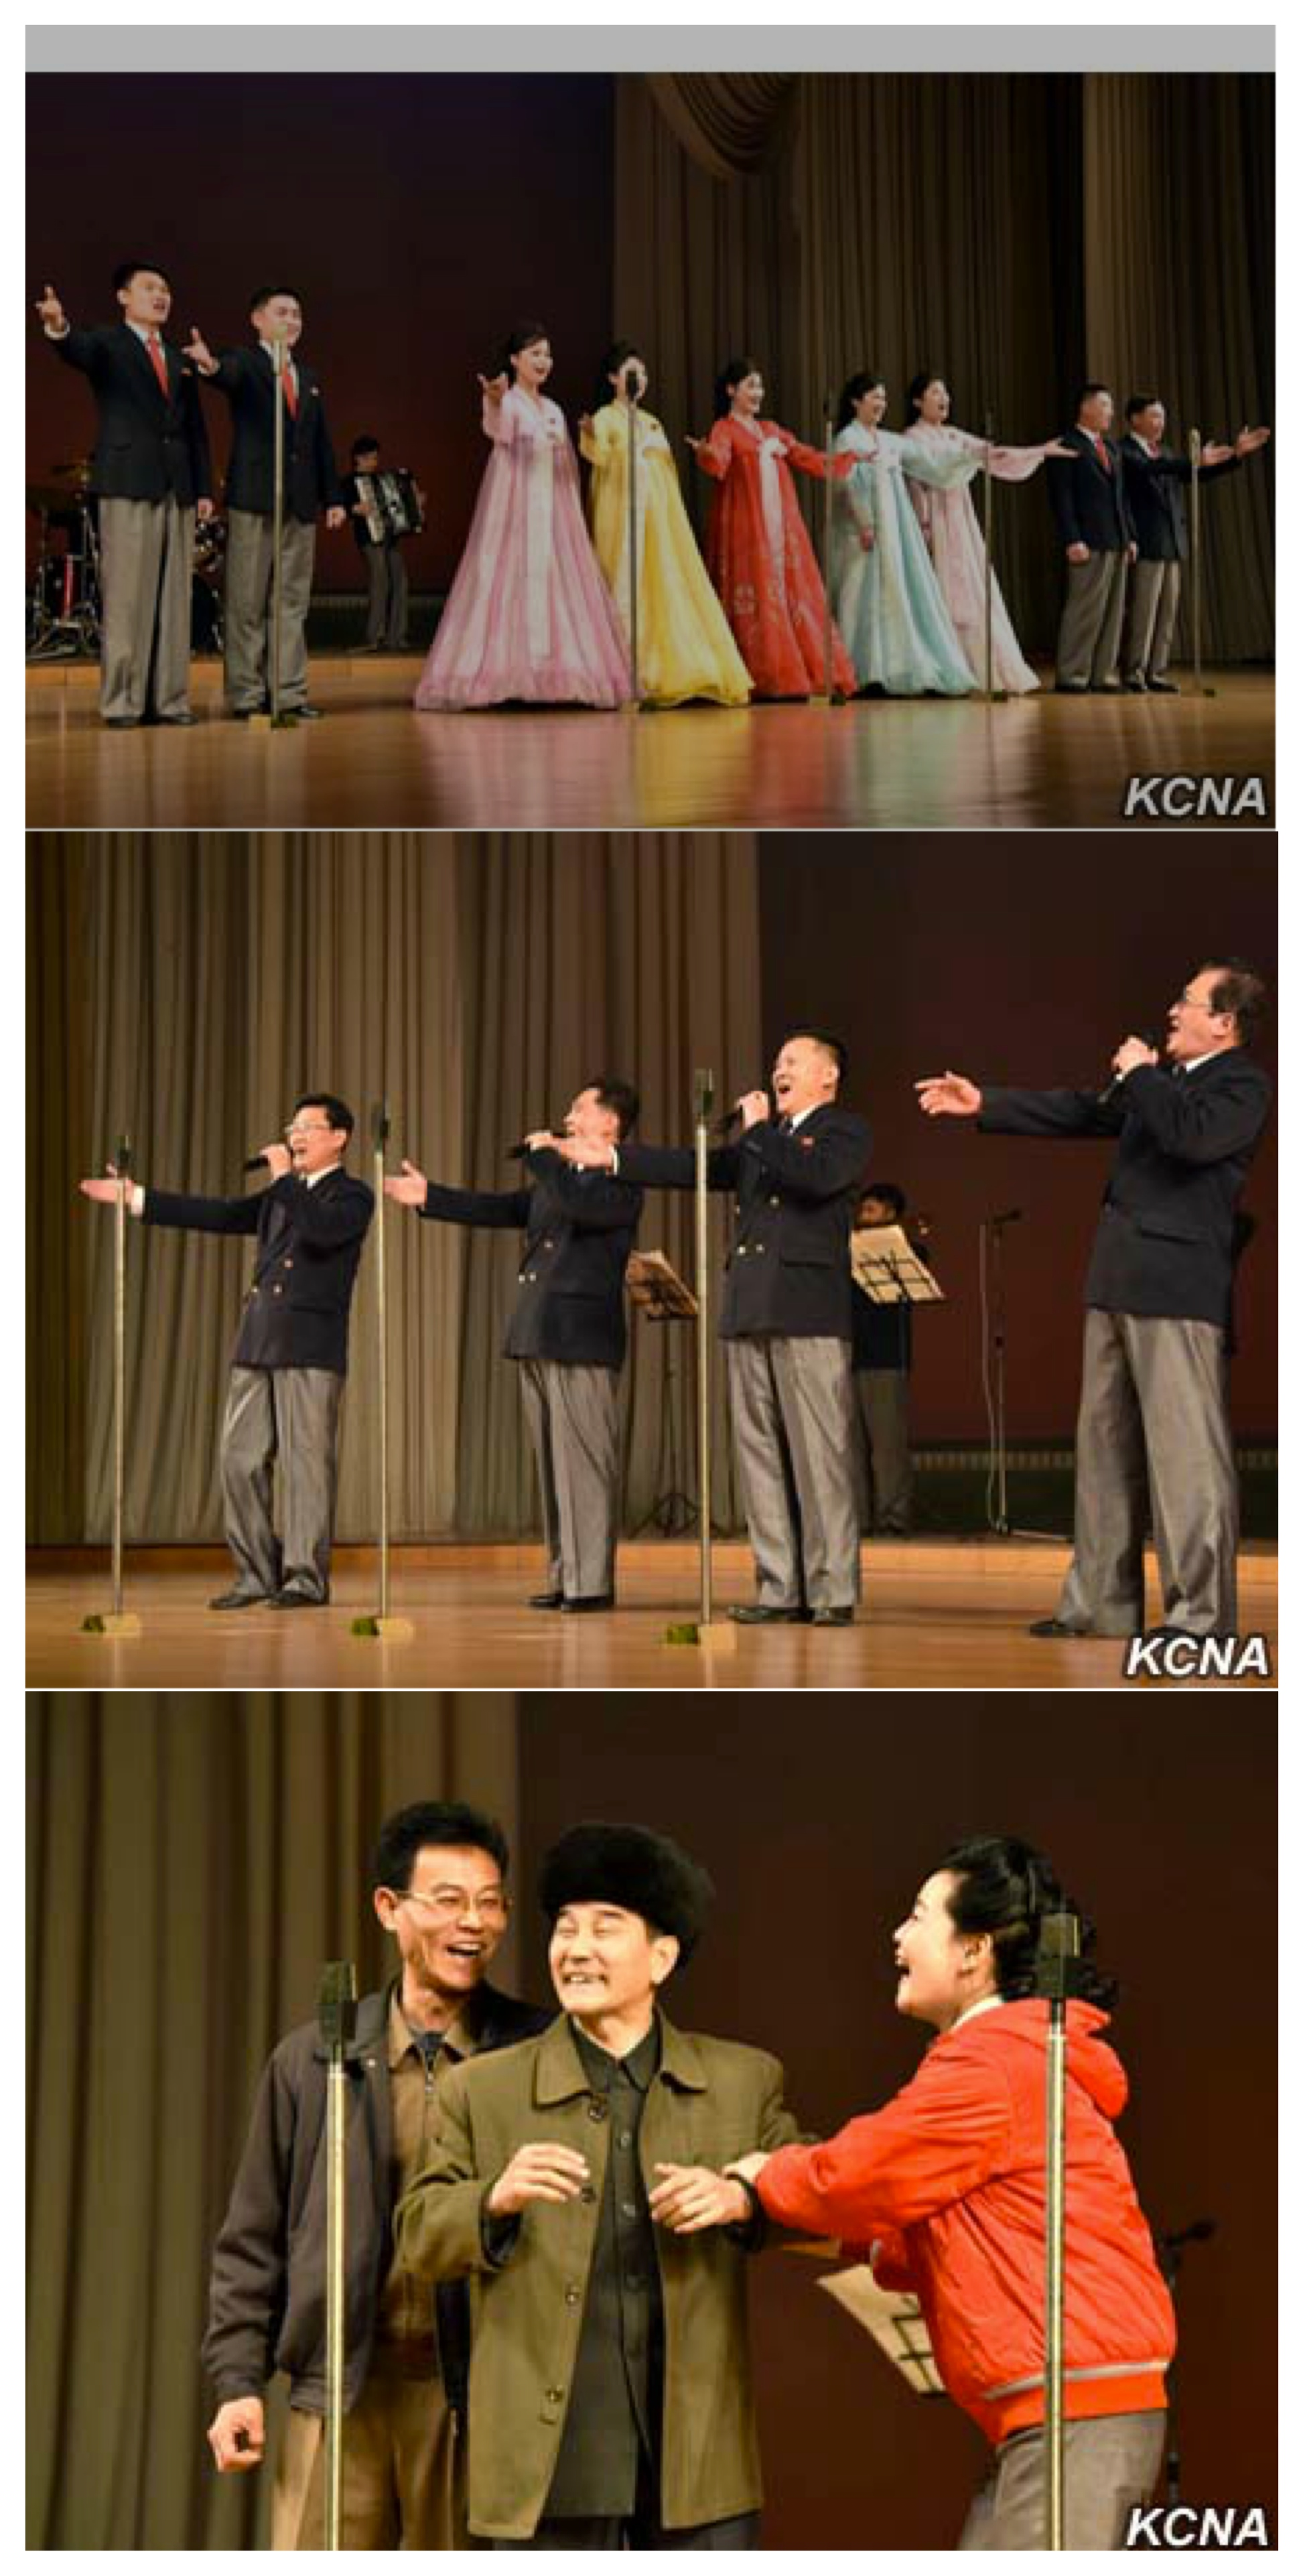 A concert marking the 70th anniversary of the Union of Agricultural Workers of Korea at the People's Palace of Culture in Pyongyang January 31, 2016 (Photos: KCNA).